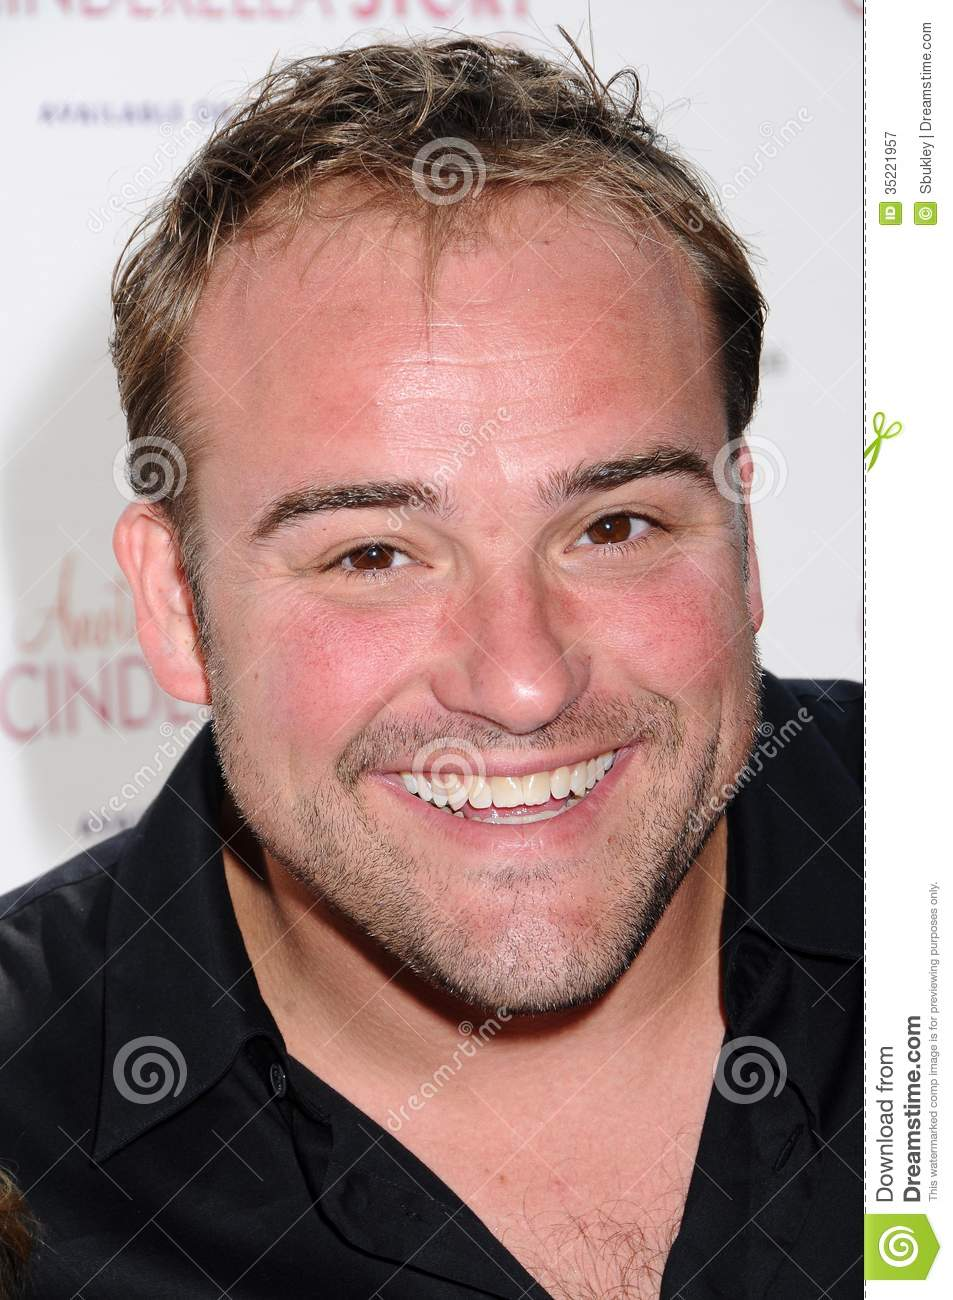 david deluise stargatedavid deluise twitter, david deluise csi, david deluise csi miami, david deluise, david deluise instagram, david deluise sharon stone, david deluise 2014, david deluise facebook, david deluise and selena gomez, david deluise net worth, david deluise movies and tv shows, david deluise imdb, david deluise 2015, david deluise hawaii five o, david deluise wife, david deluise grey's anatomy, david deluise beneful commercial, david deluise stargate, david deluise gay, david deluise bio